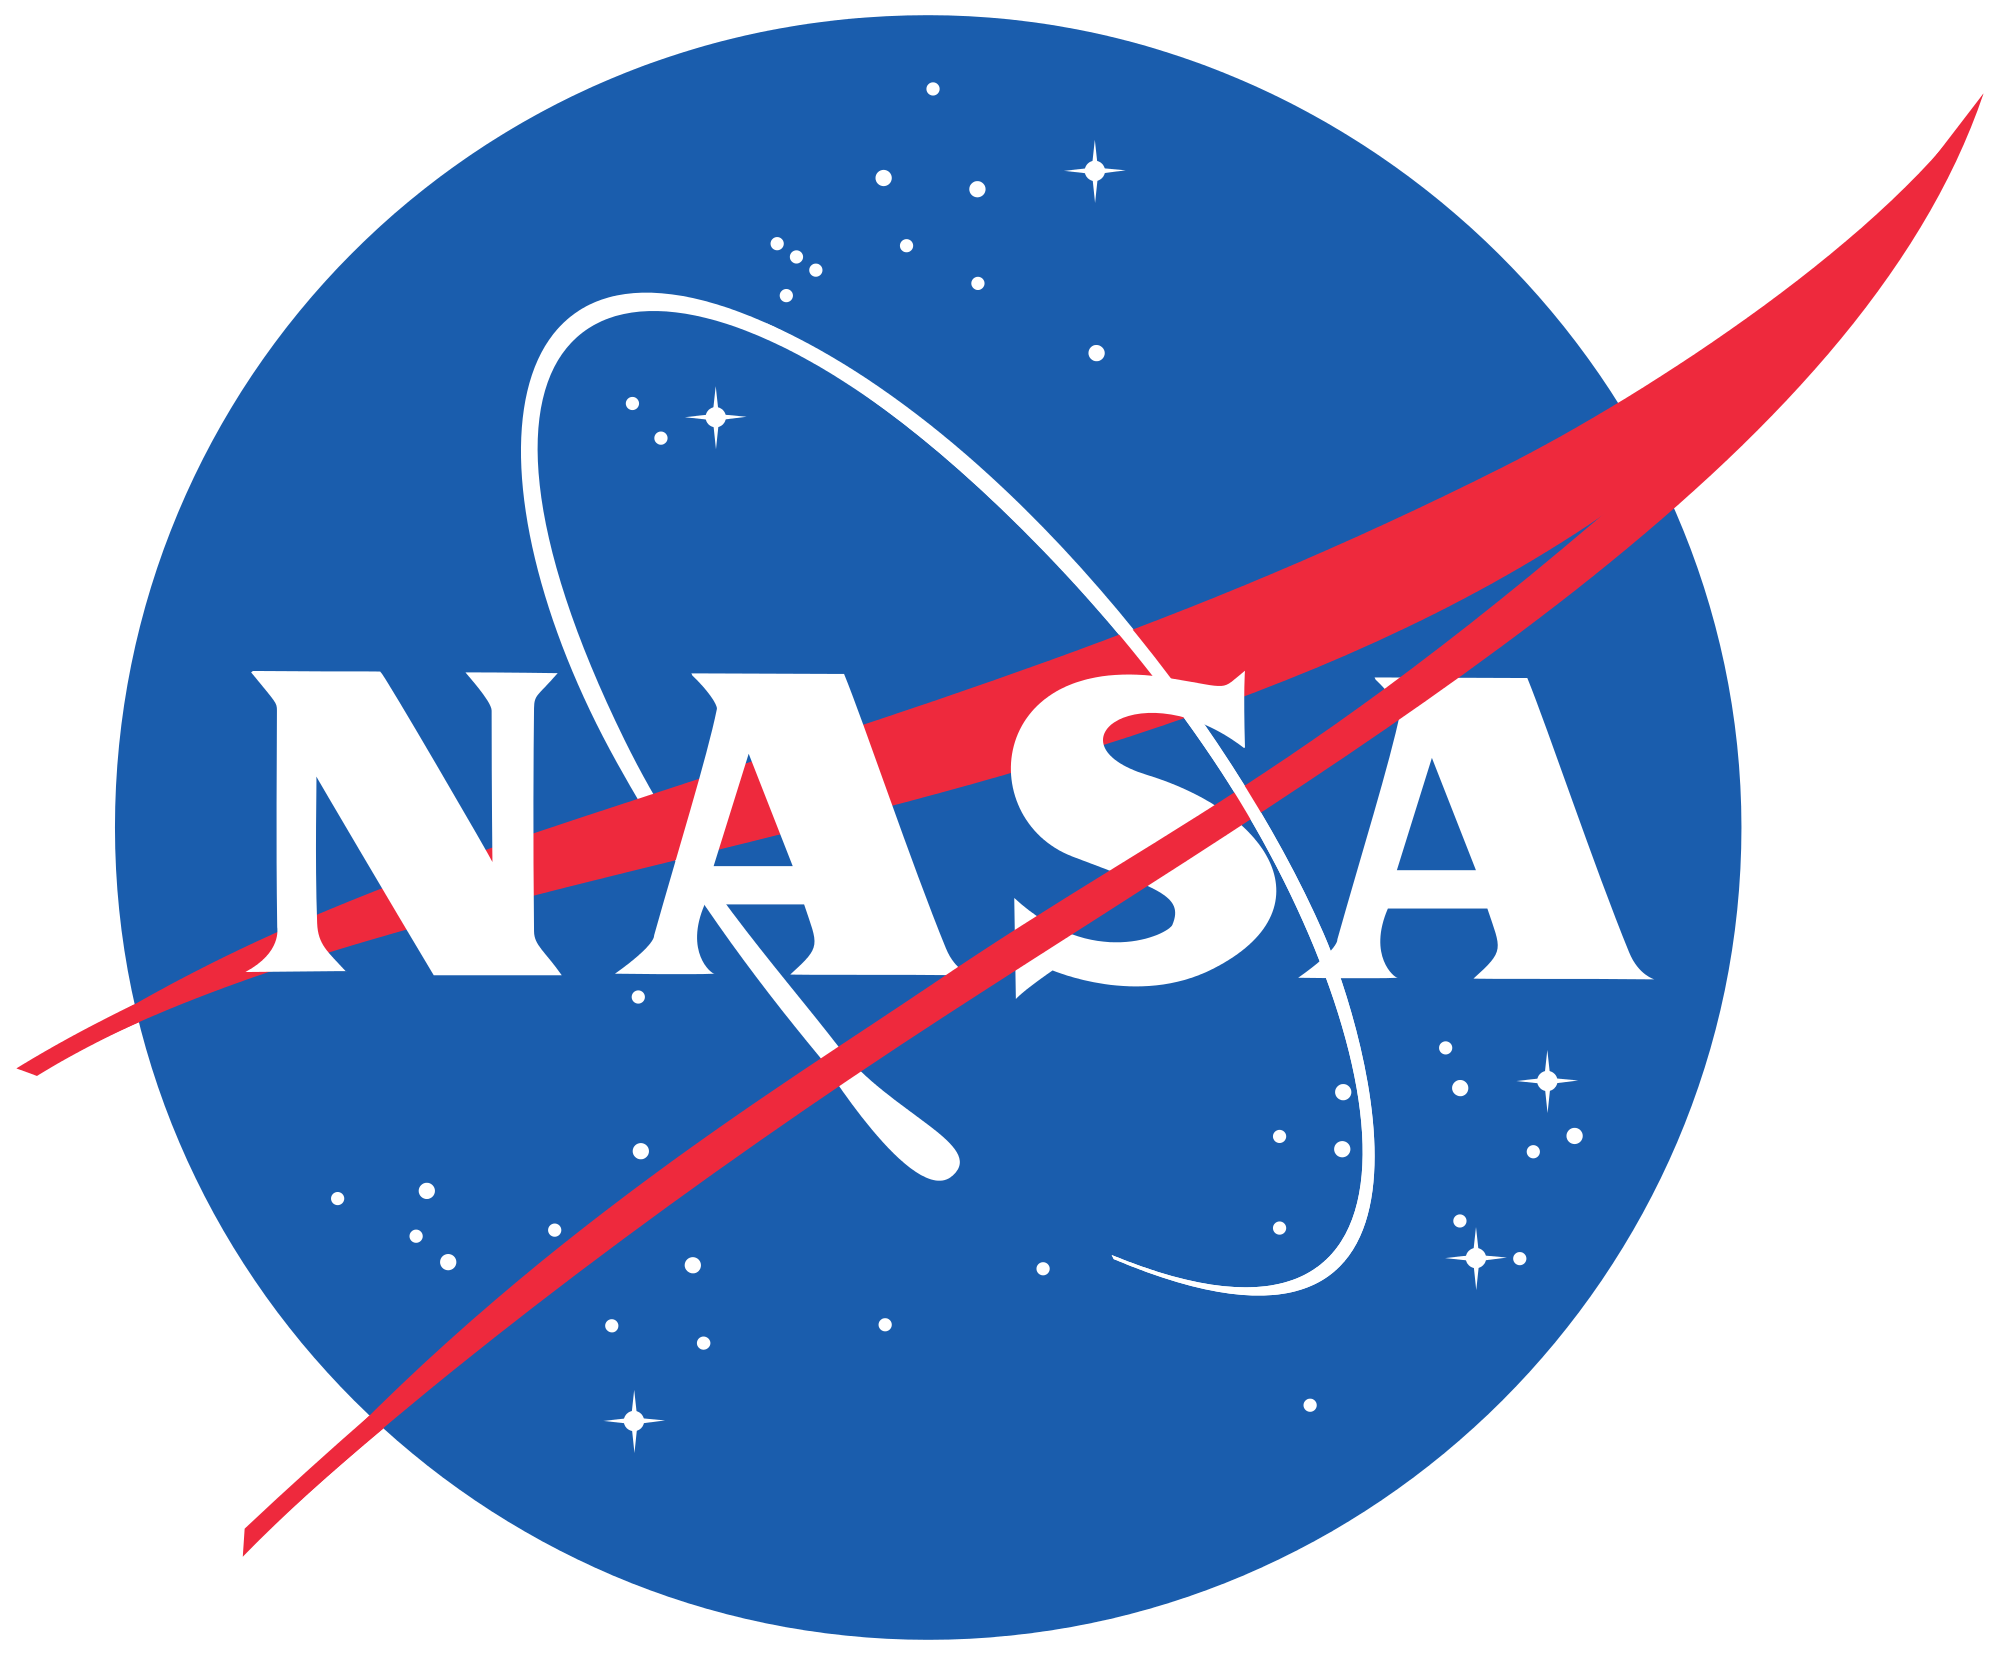 While 2016 flies by, NASA makes giant advancements.